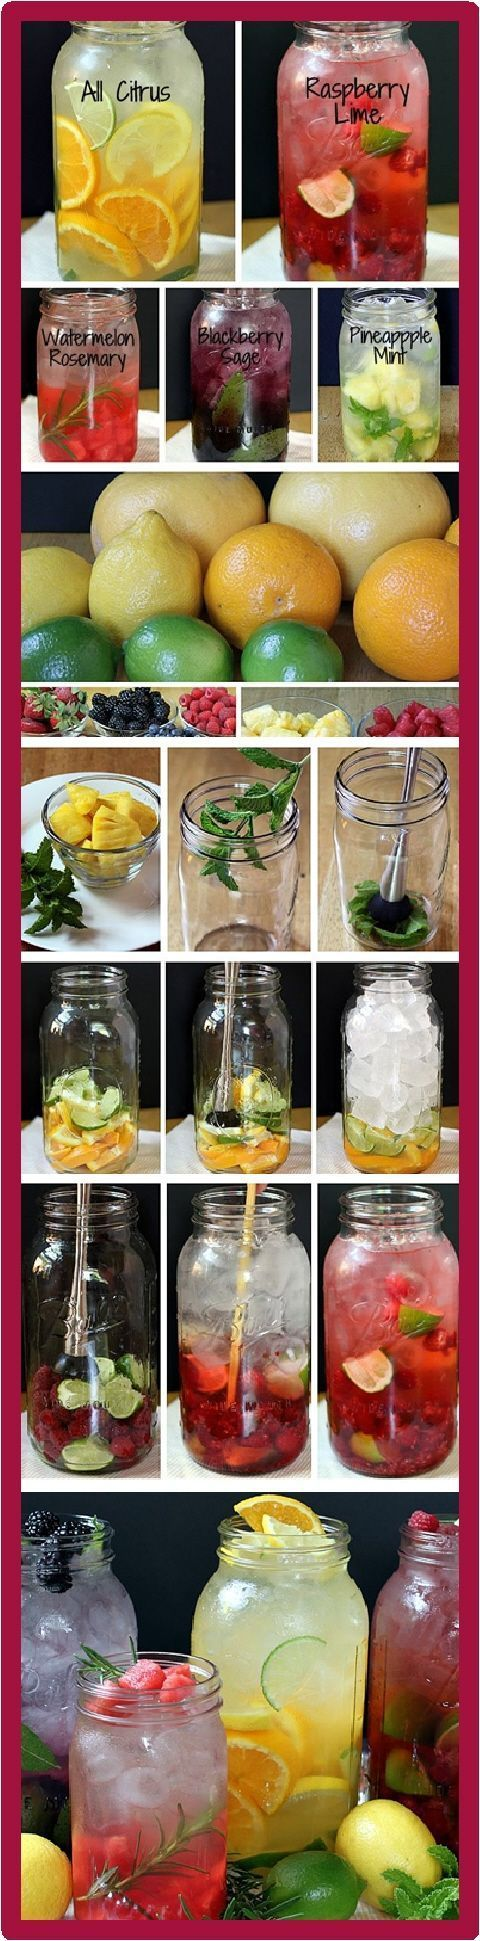 Refreshing & Flavorful Drink: Make your own vitamin water. Add fruits instead of sugar for a natural sweetener for your water. Cut the fruit into paper-thin slices or small chunks. Add fresh spices or citrus as pictured or add your own favorites. Combine ingredients with water. Refrigerate 4-6 hours. Serve over ice. Yummy. ♥